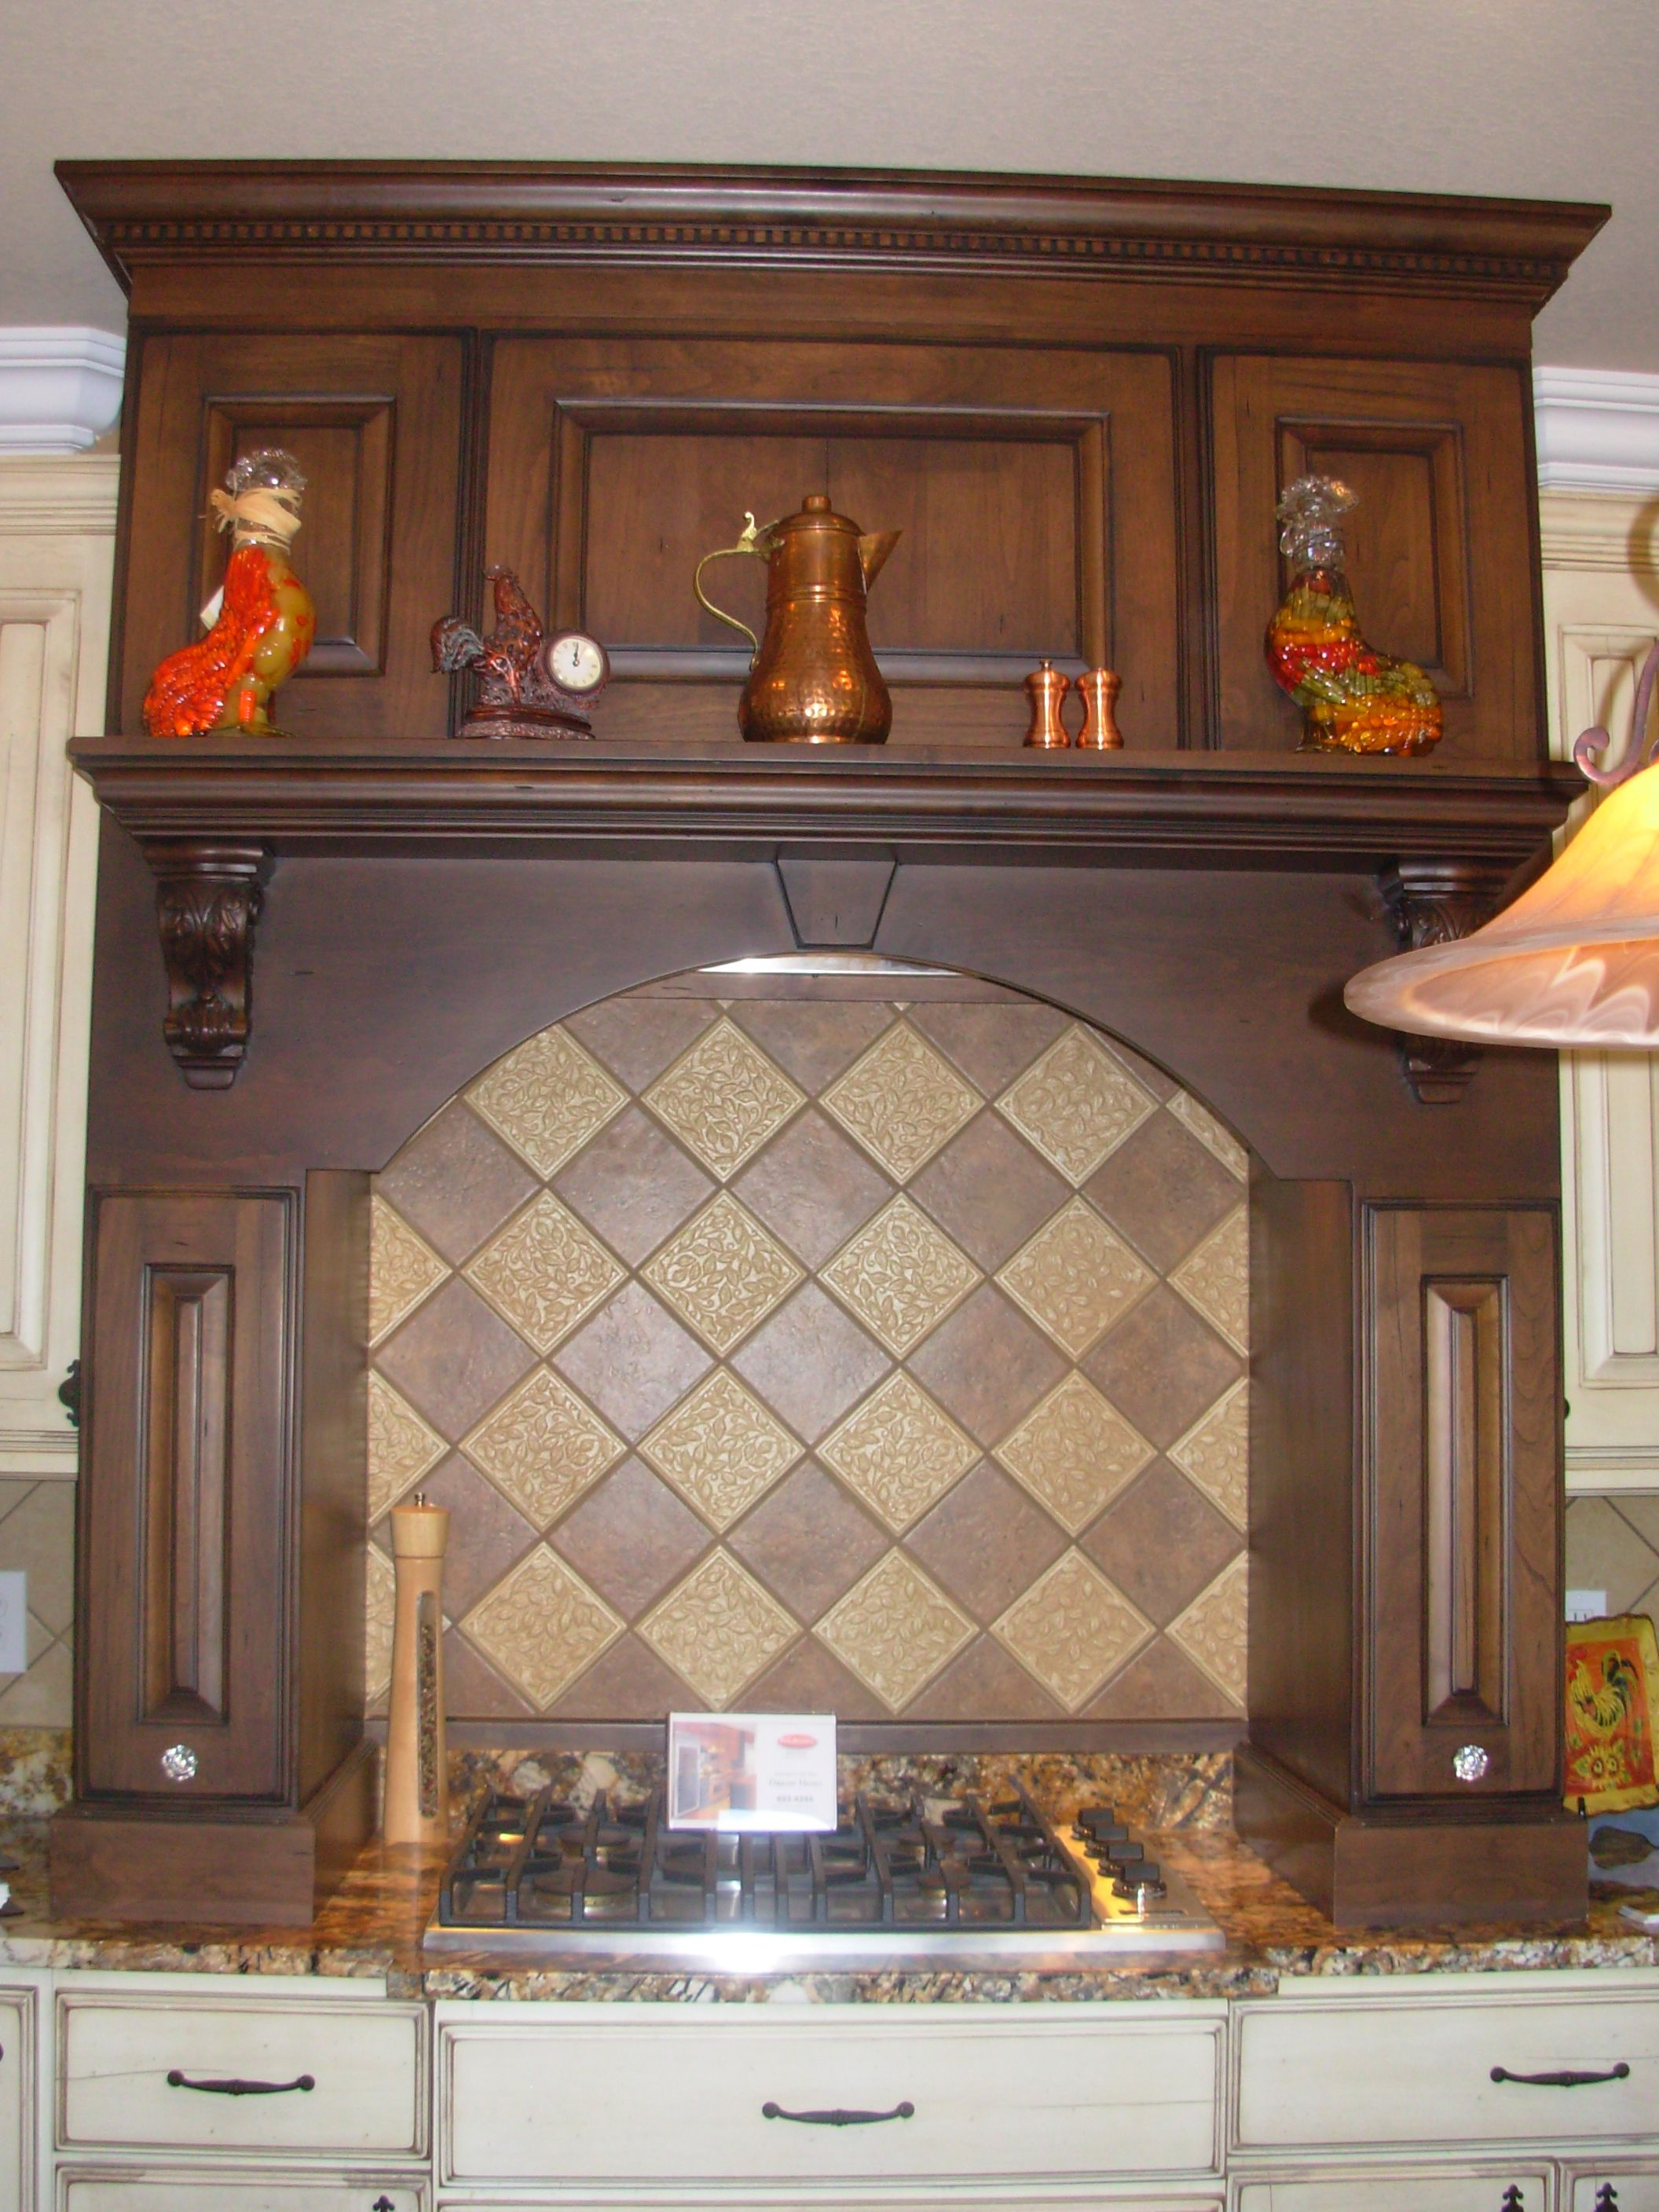 Frank Betz Ingrams Mill, Luxe Homes U0026 Design, Double Mantel, Wood Mantel  Hood, Custom Cupboards Cabinets